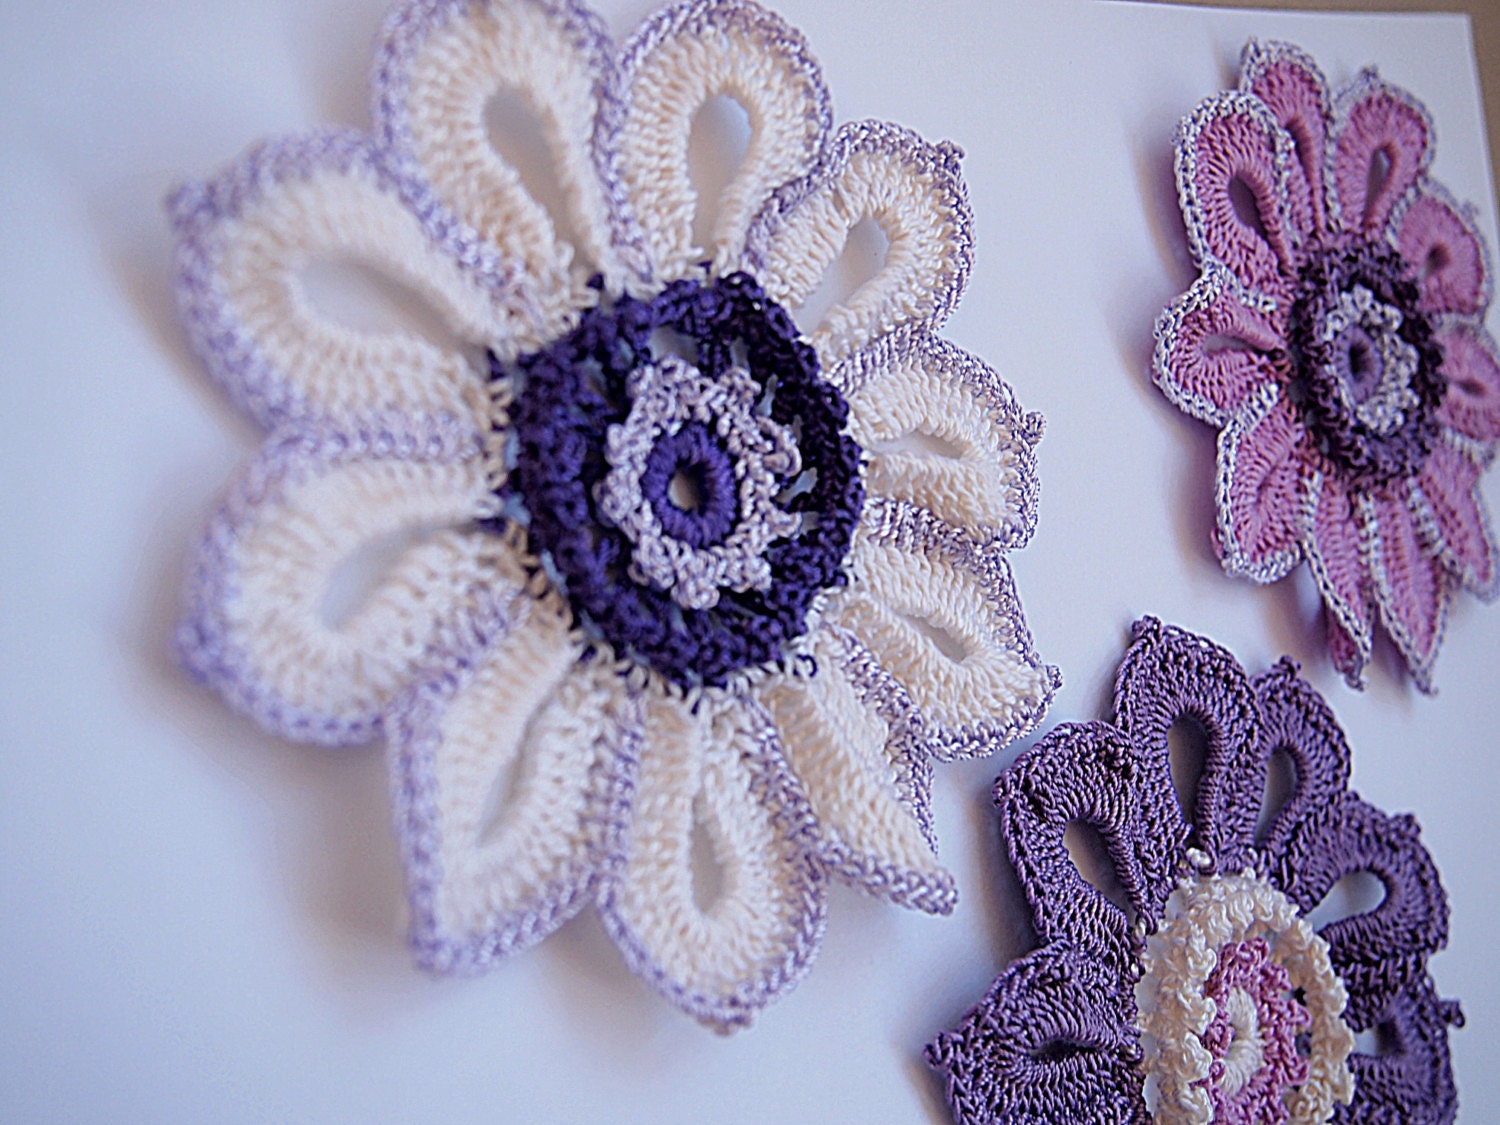 Crochet flower patterndetailed tutorialcrochet embelishment crochet flower patterndetailed tutorialcrochet embelishmentcrochet broochcrochet flower pincrochet decor patternirish crochet pattern dt1010fo